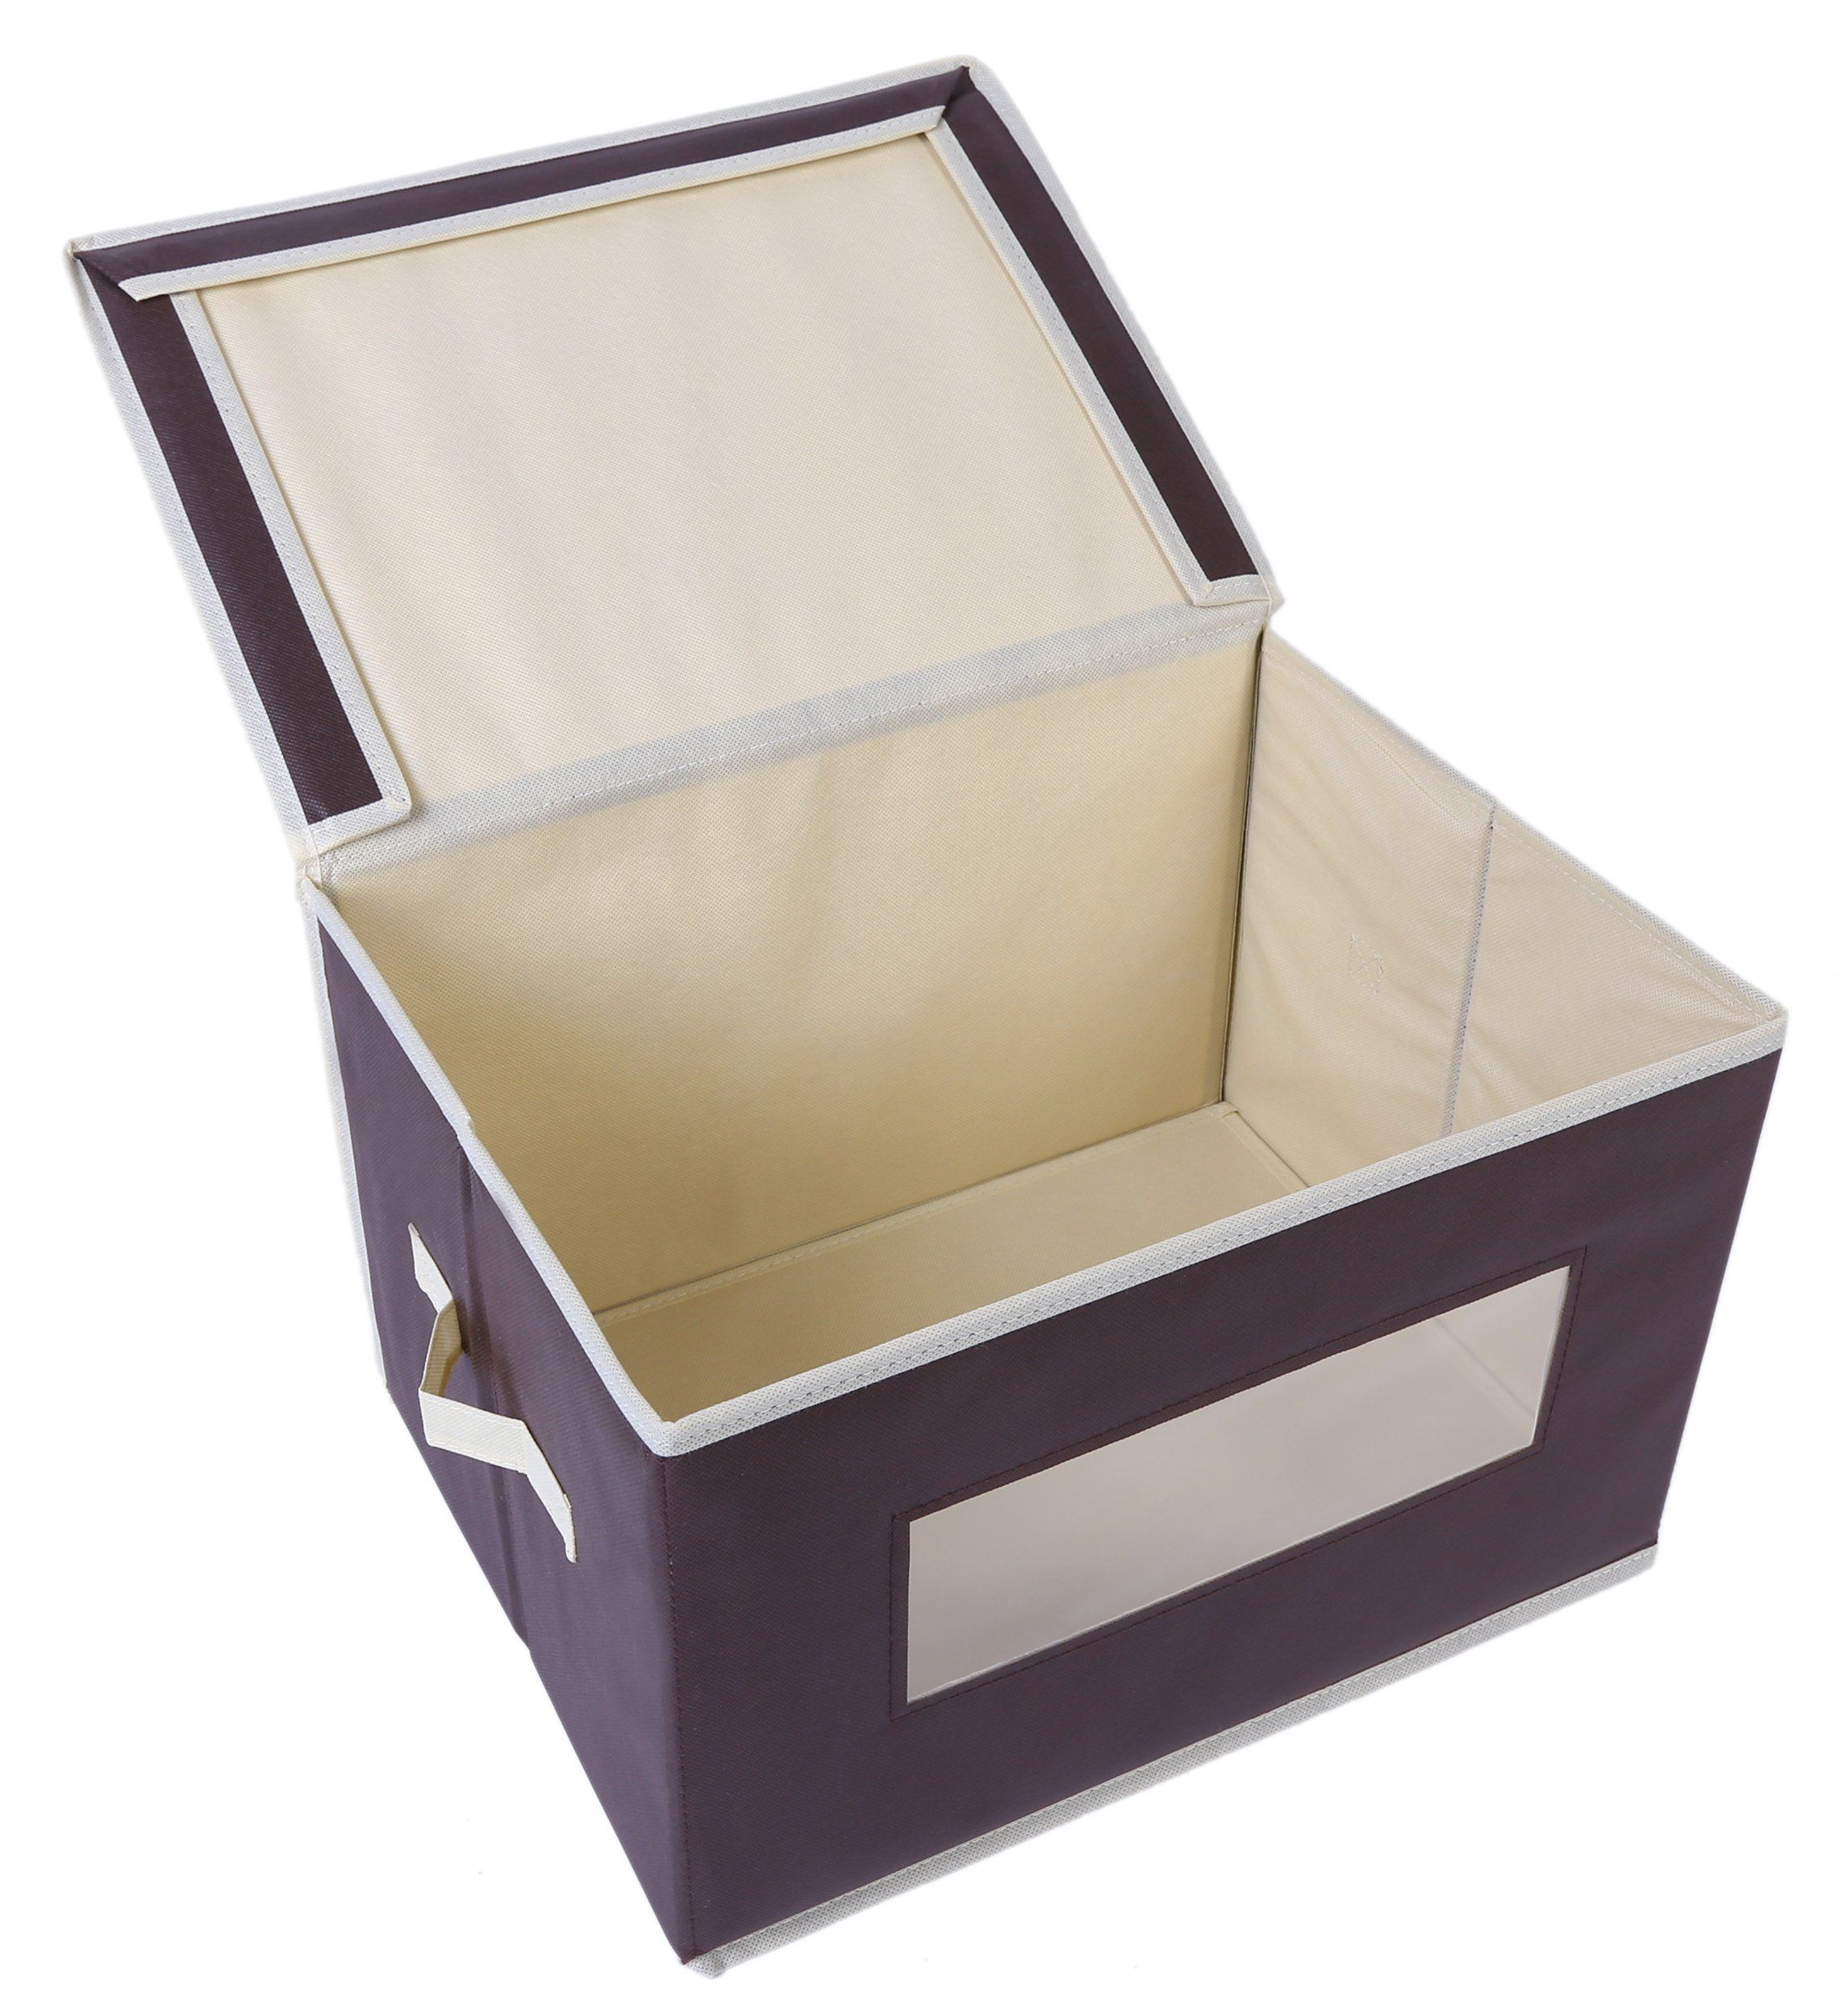 Foldable Fabric Storage Containers Bins Organization Cube Boxes With Clear Windows And Lids For Household It Organizing Bins Fabric Storage Household Items